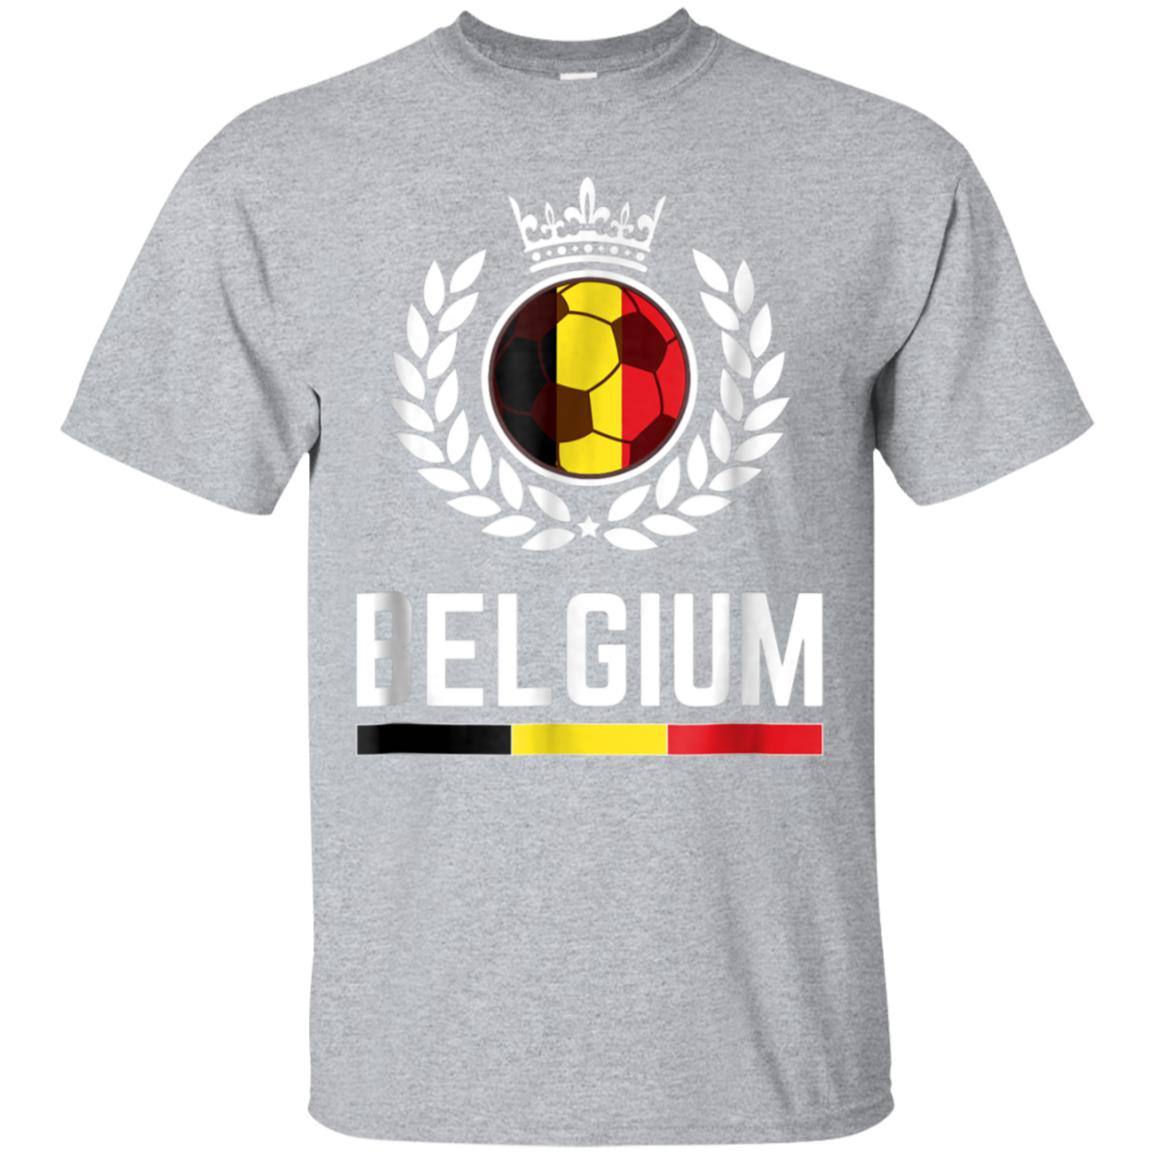 Belgium Soccer Jersey 2018 Belgian Football Team Fan Shirt 99promocode